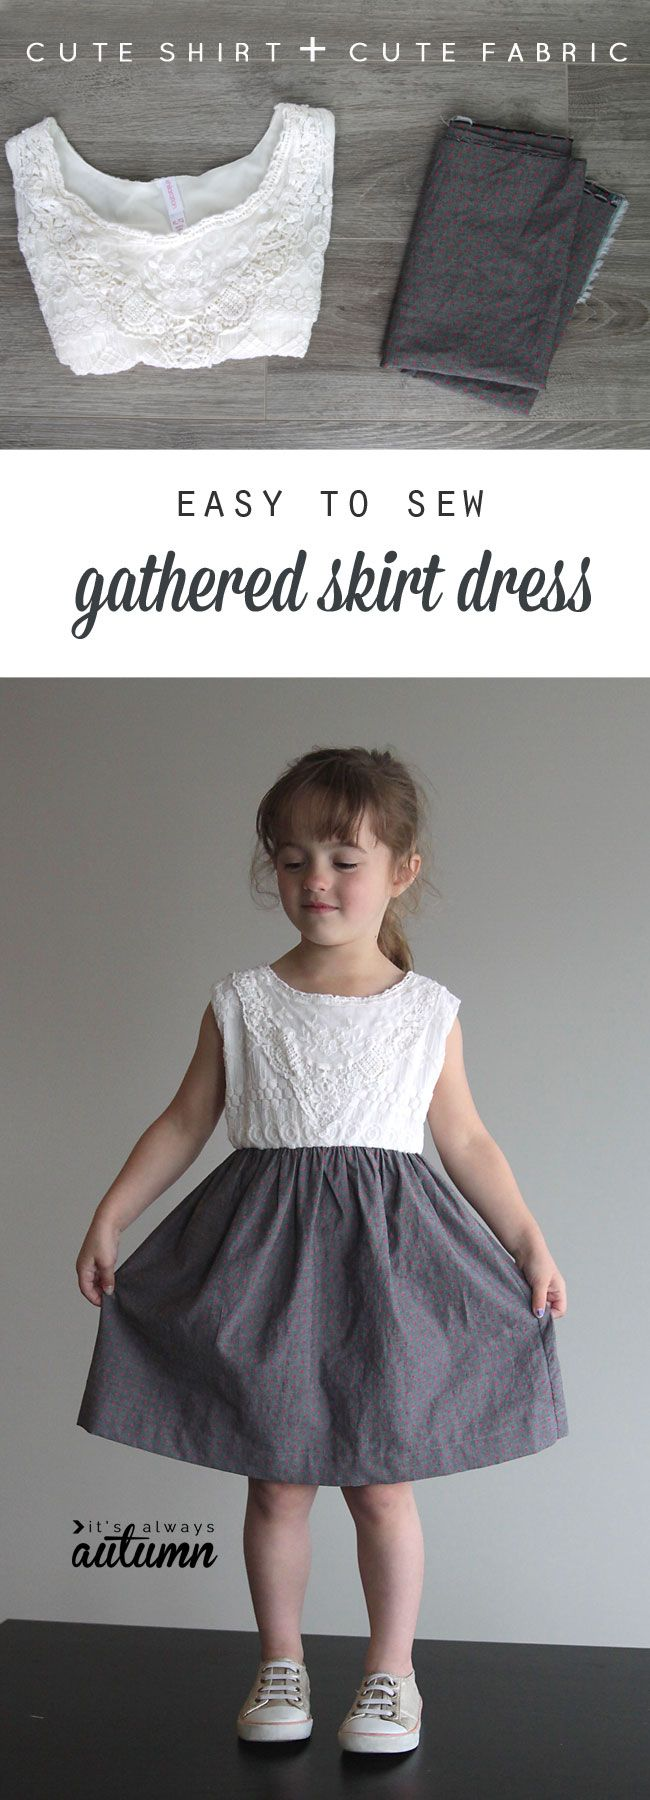 730289dab226 All you need is a cute tee and some fabric to make this super easy gathered  skirt dress. Great DIY sewing tutorial!